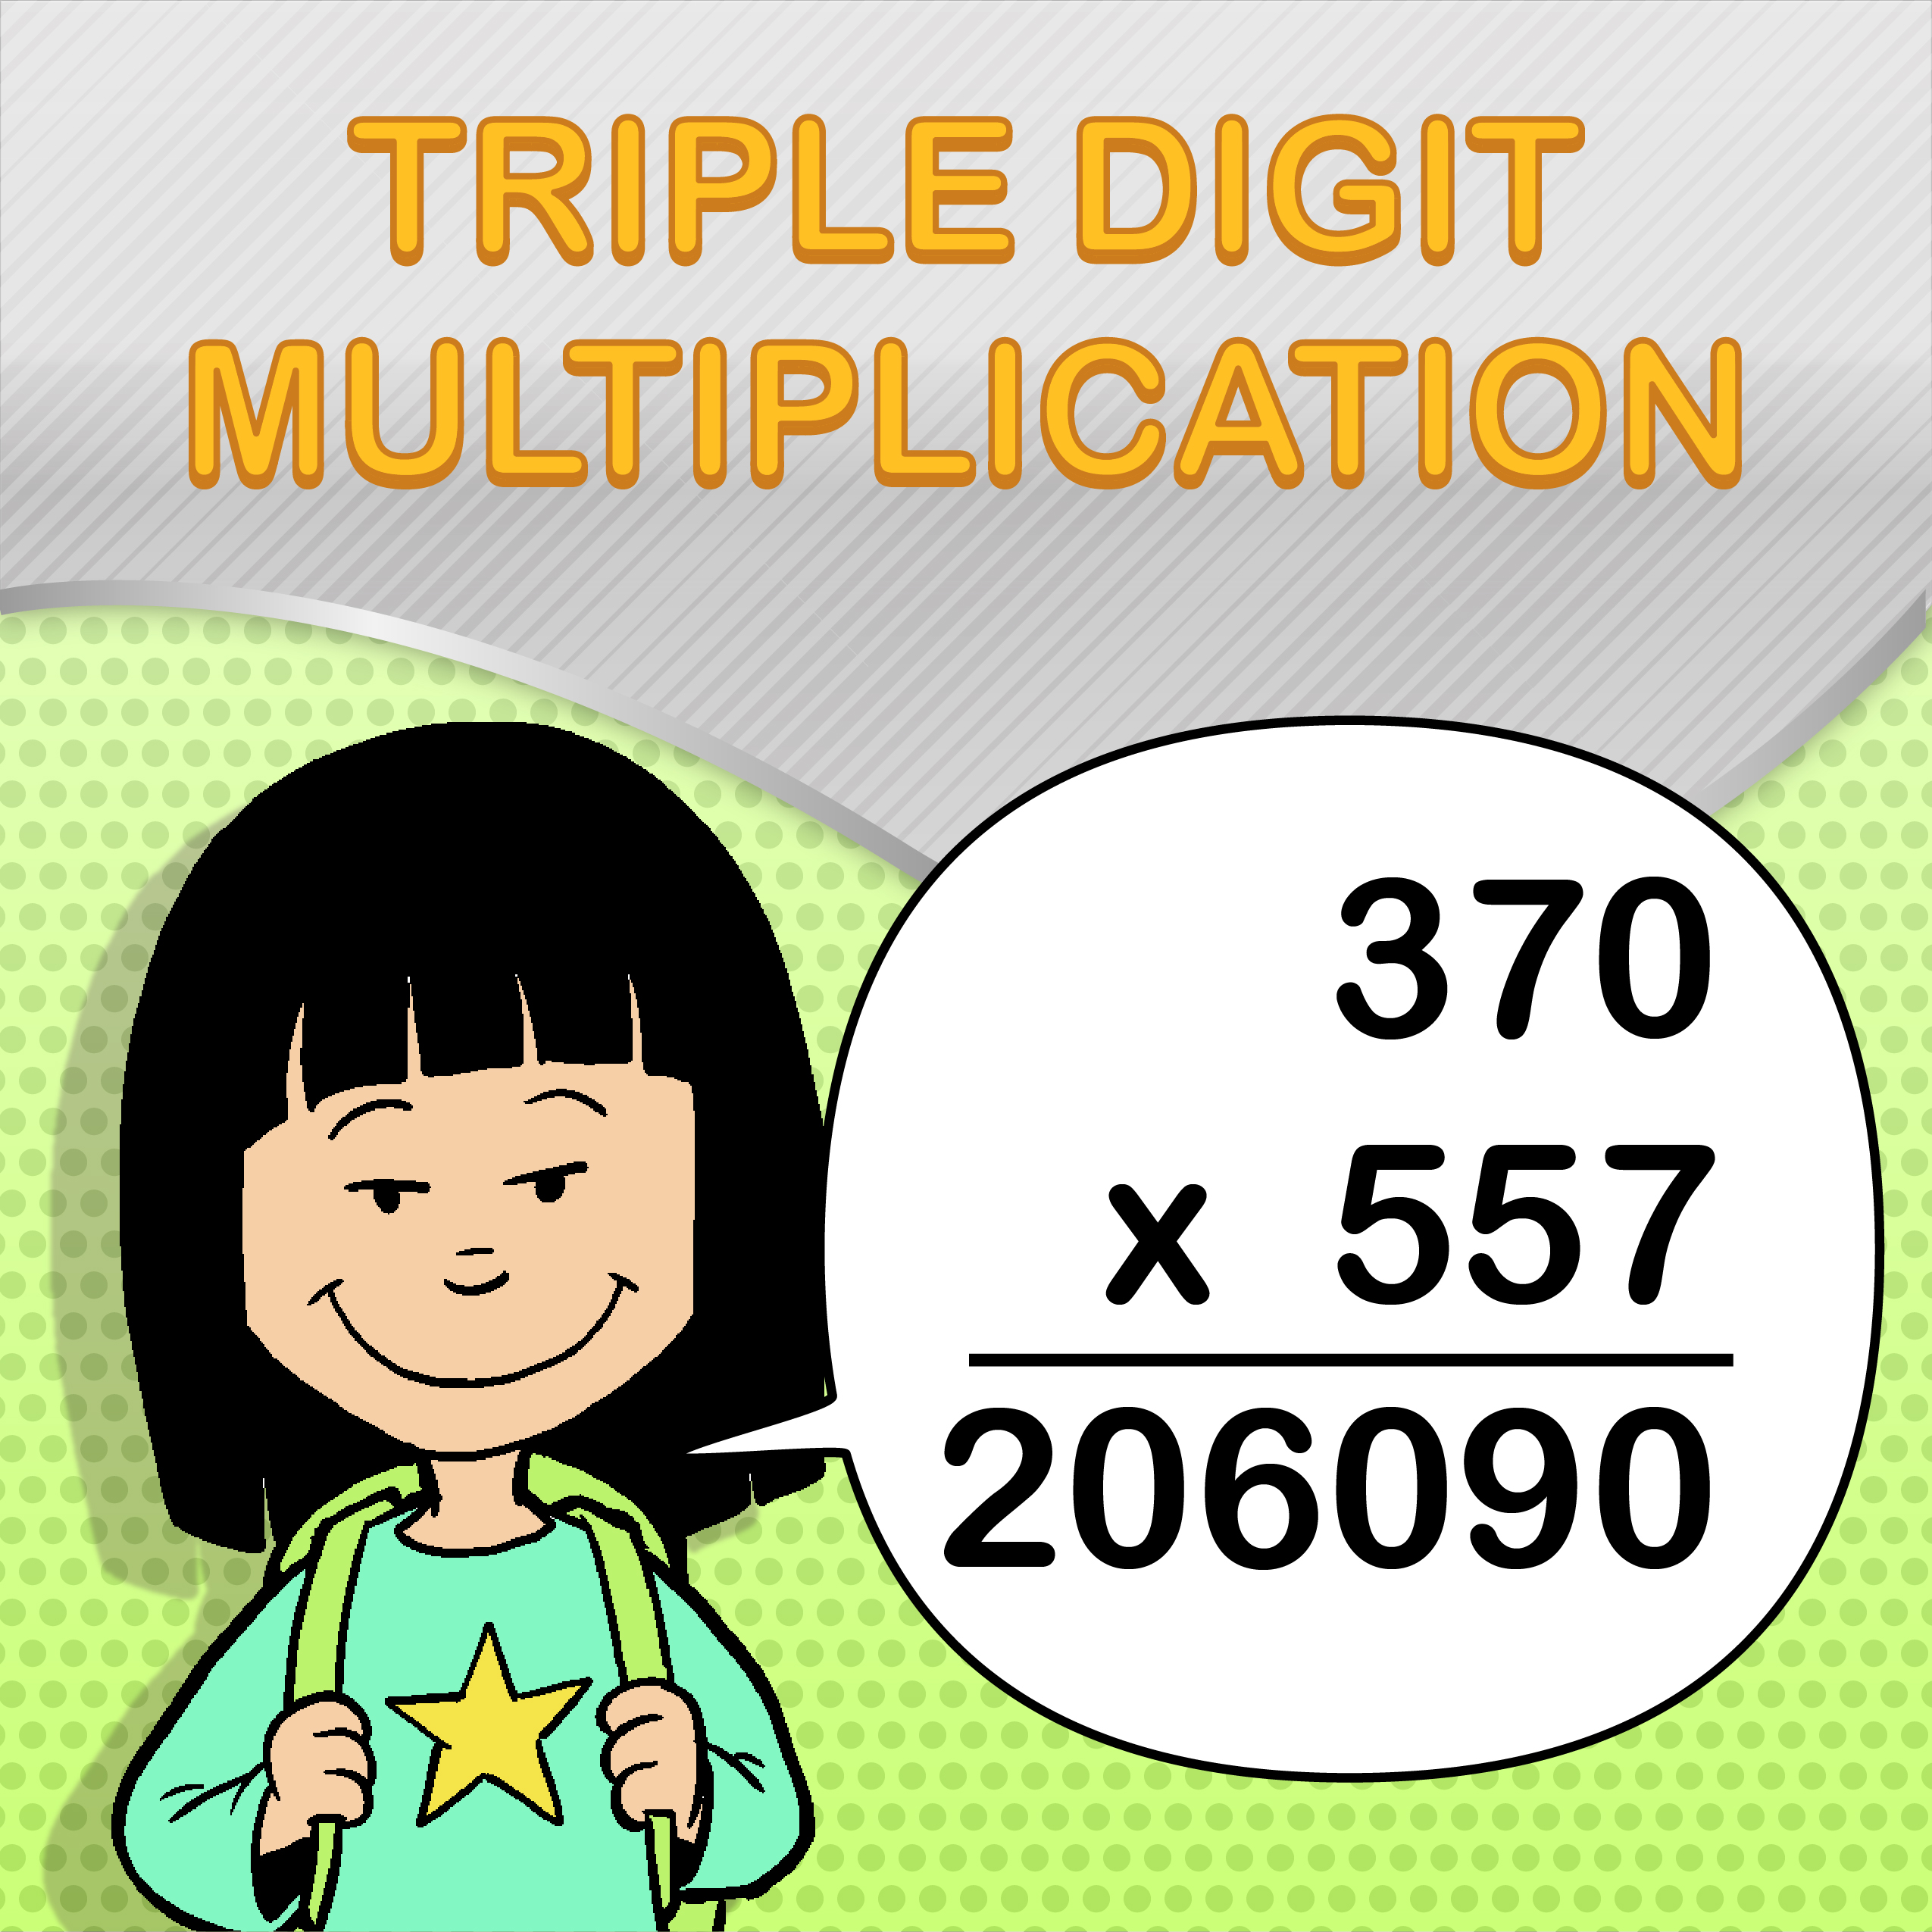 Triple Digit Multiplication Worksheets For Kids And